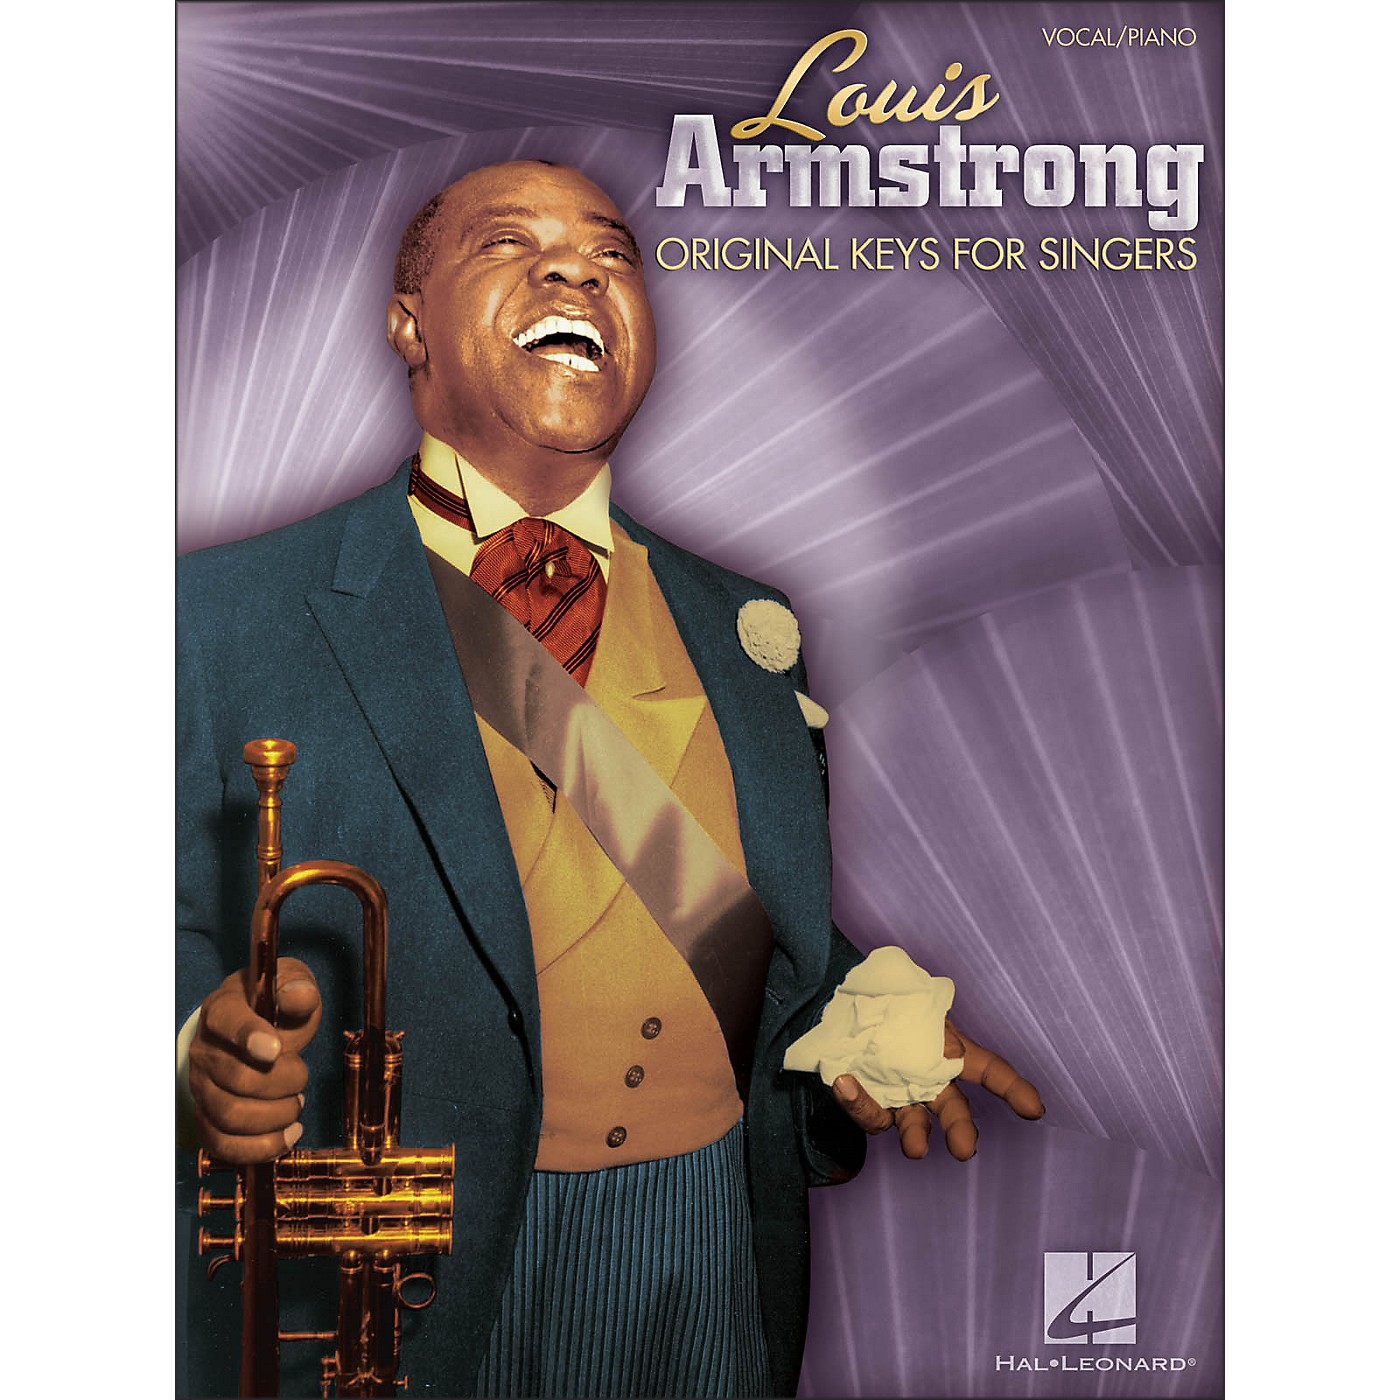 Hal Leonard Louis Armstrong - Original Keys for Singers (Vocal / Piano) thumbnail